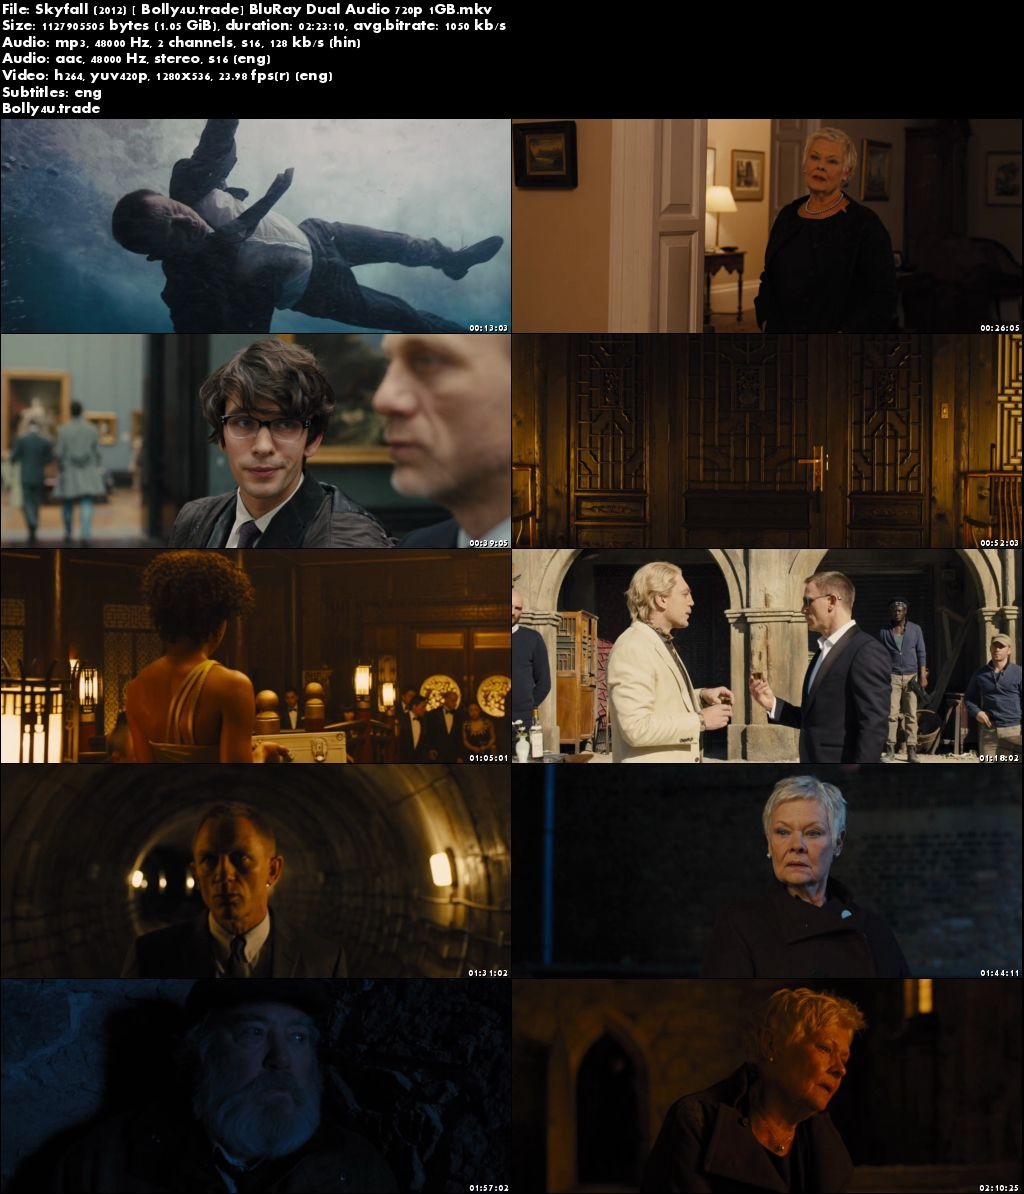 Skyfall 2012 BluRay 1GB Hindi Dubbed Dual Audio 720p ESub Download